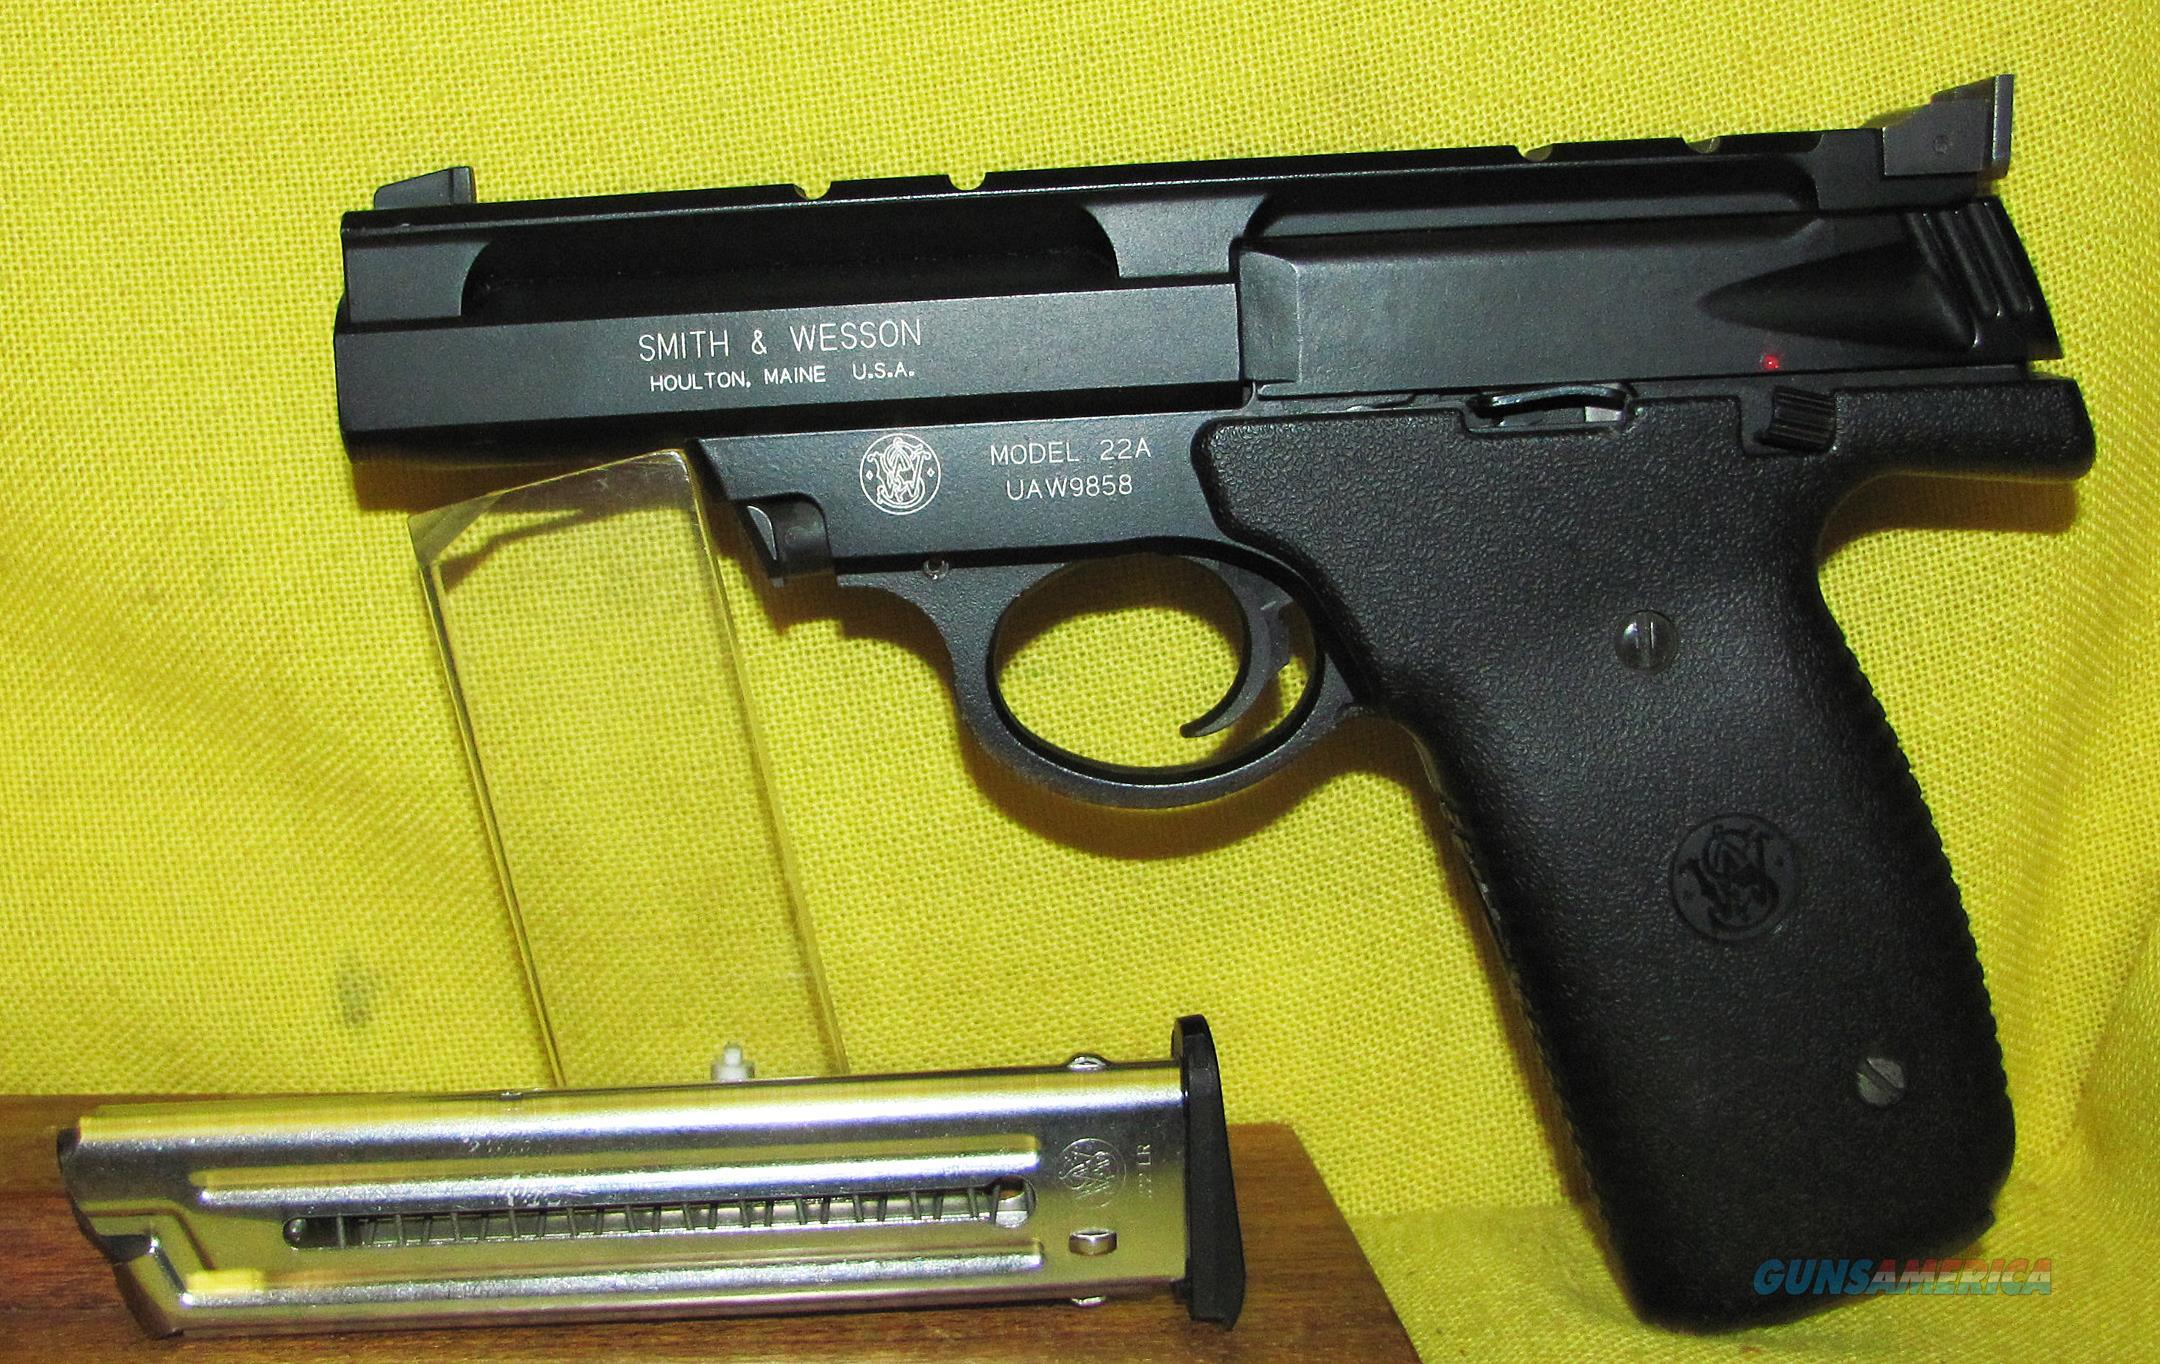 S&W 22A  Guns > Pistols > Smith & Wesson Pistols - Autos > .22 Autos